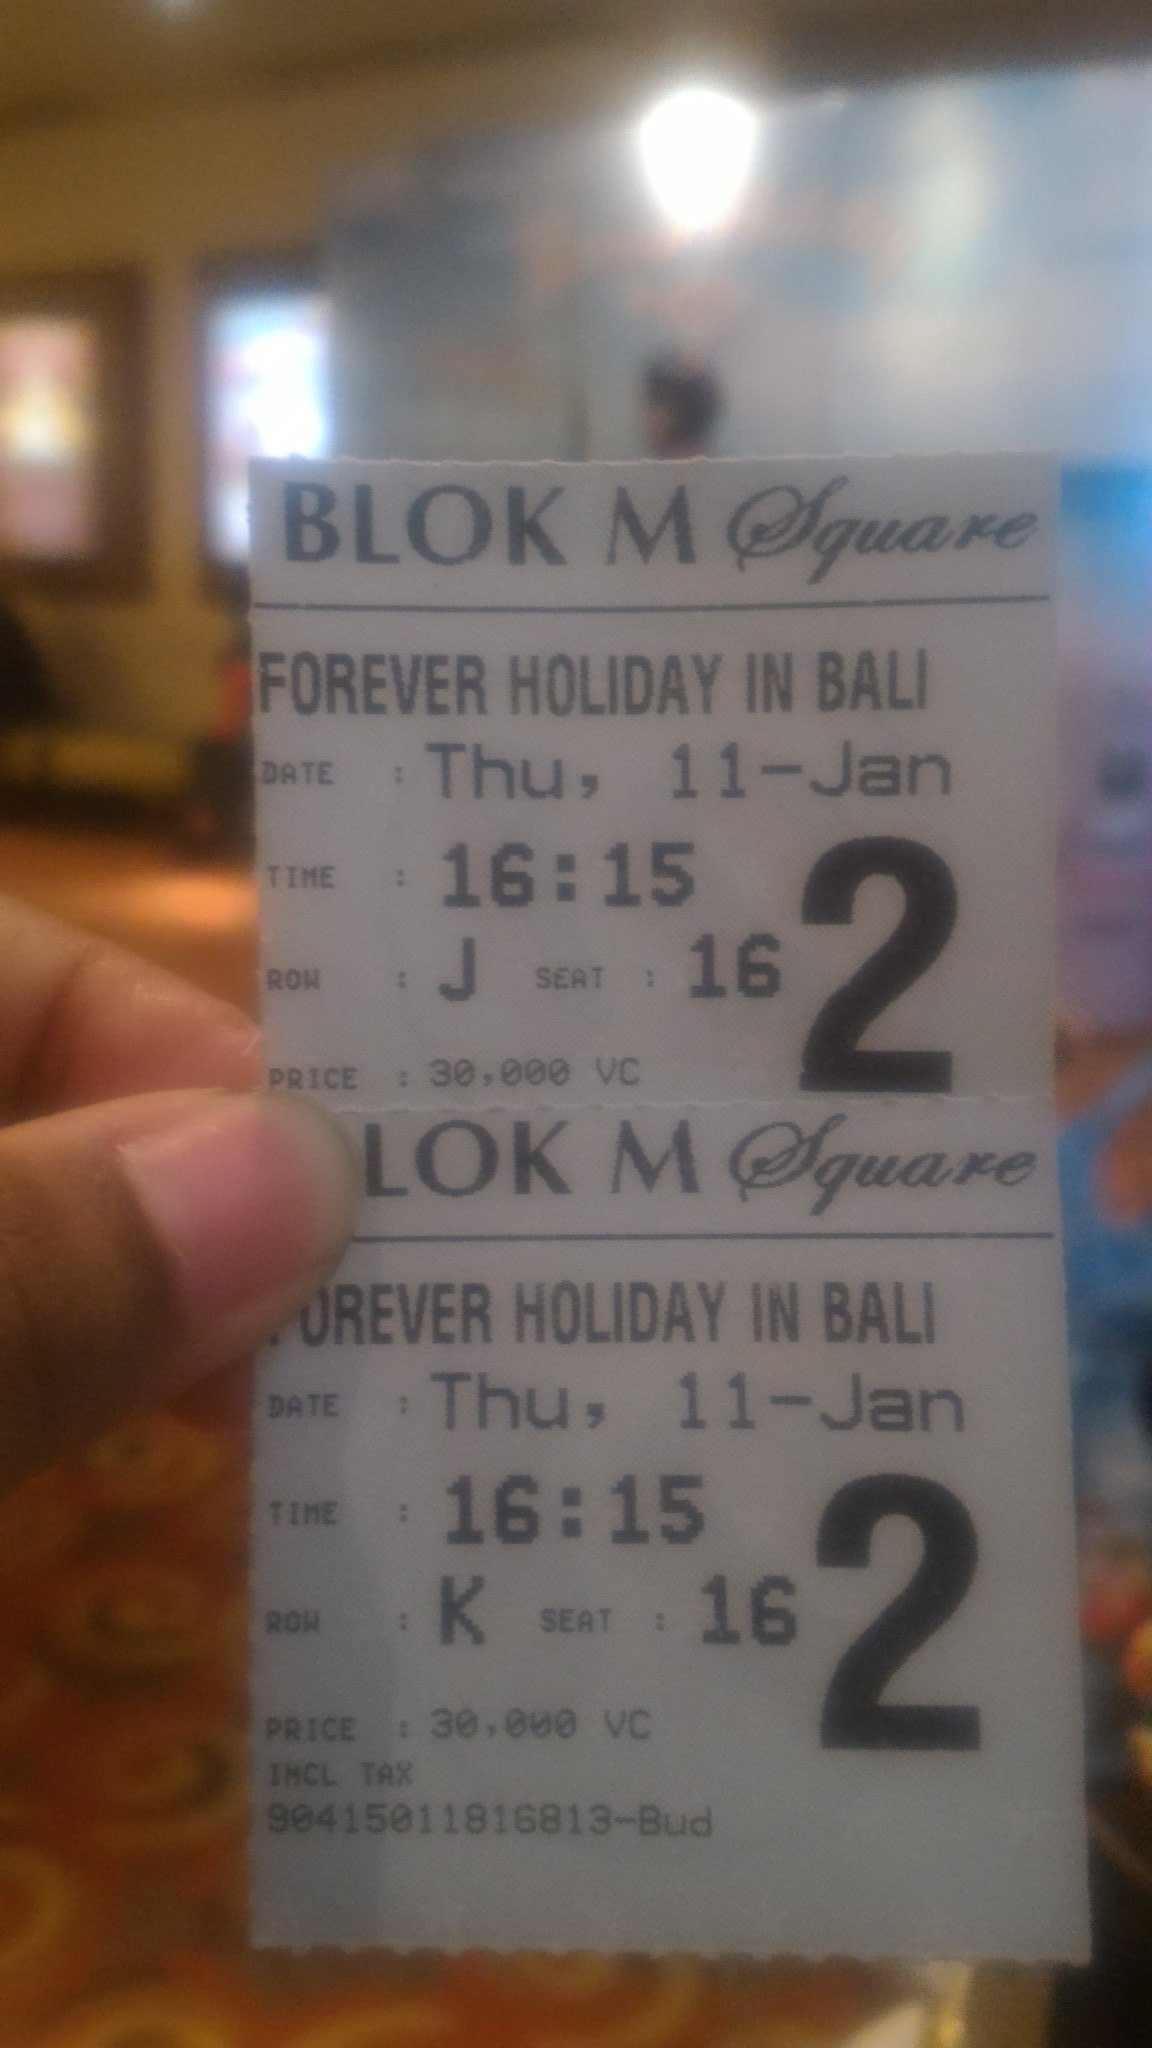 Forever Holiday in Bali Premiere  January, 11st 2018 #Thunder #천둥 #MBLAQ https://t.co/lh8EmG07Lk